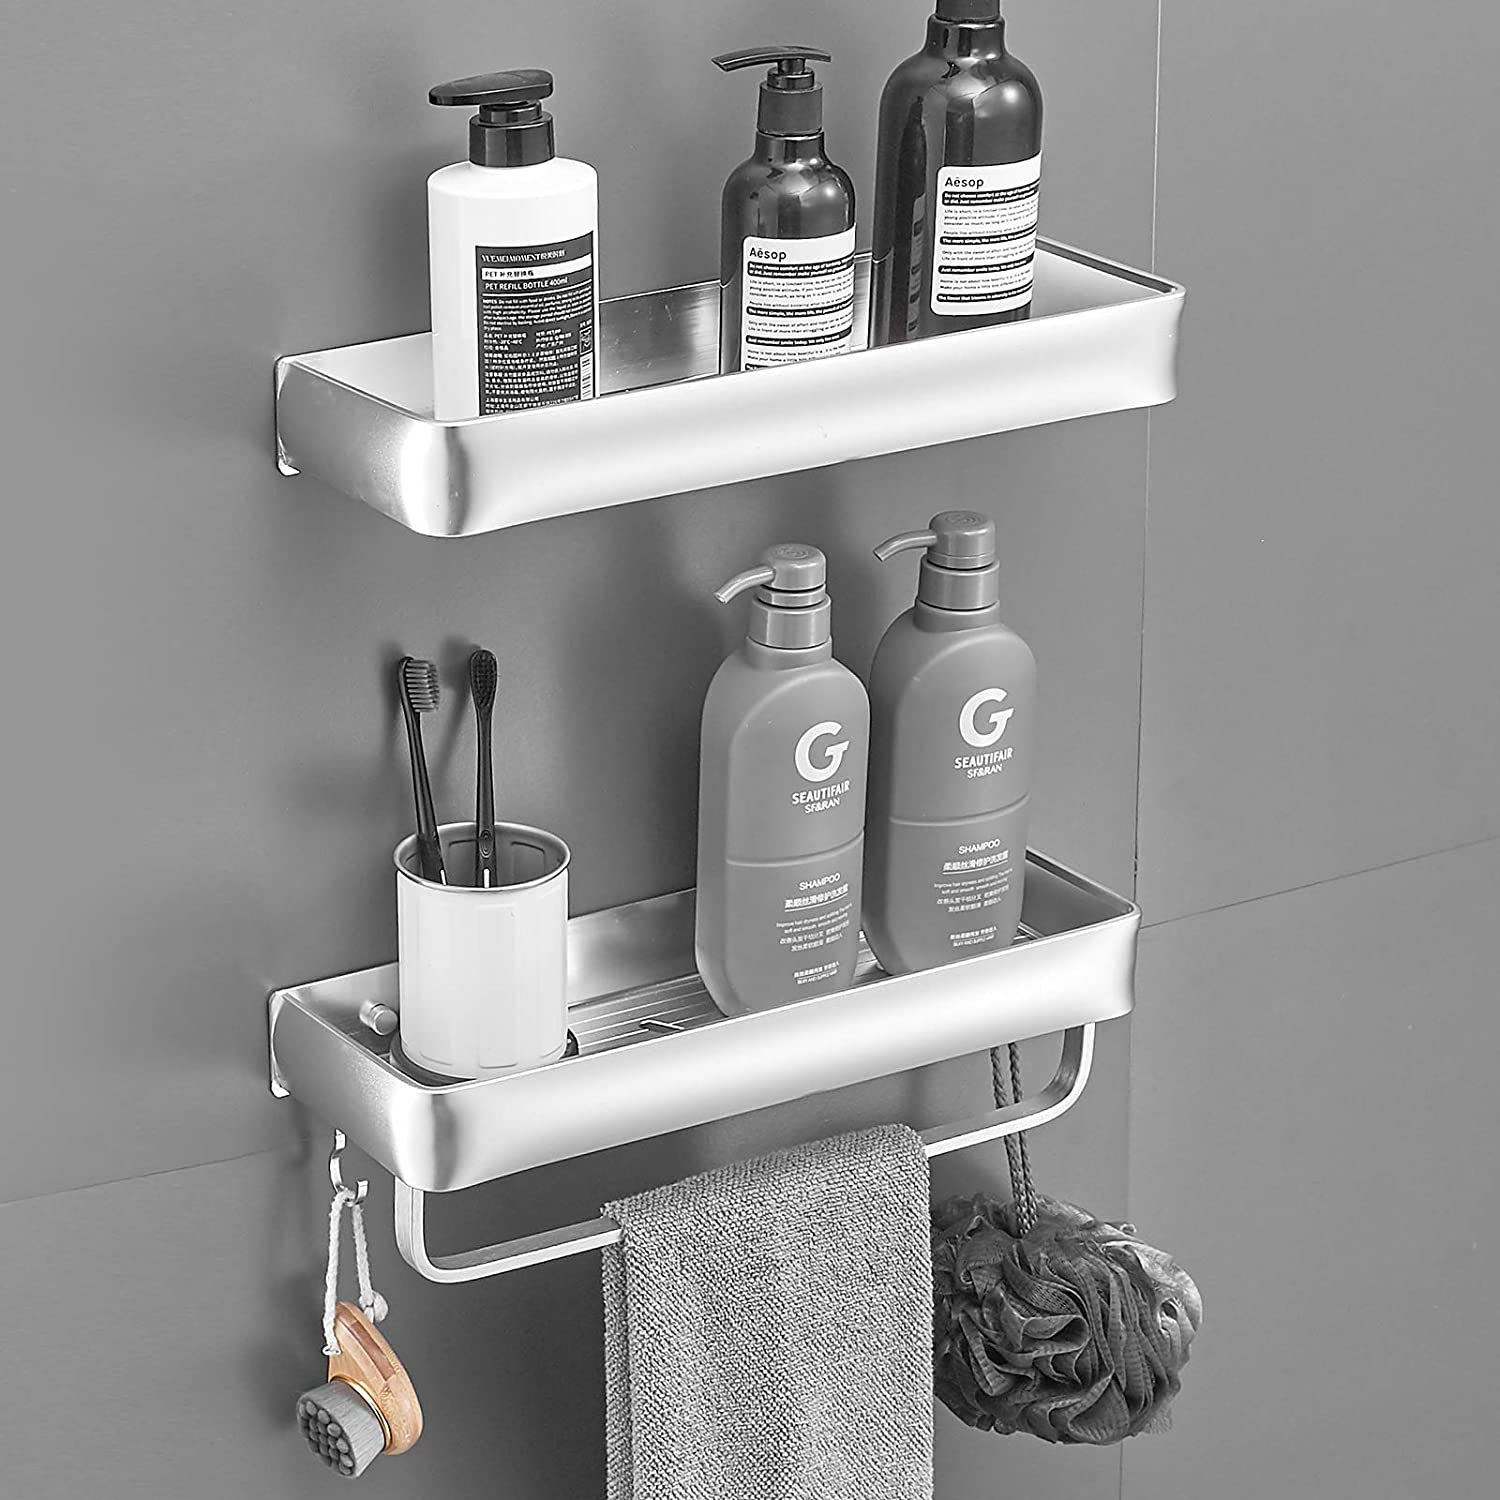 Delysia king Bathroom Shelves with Rapid Ranking TOP11 rise Towel and Hooks Metal Bar W 5